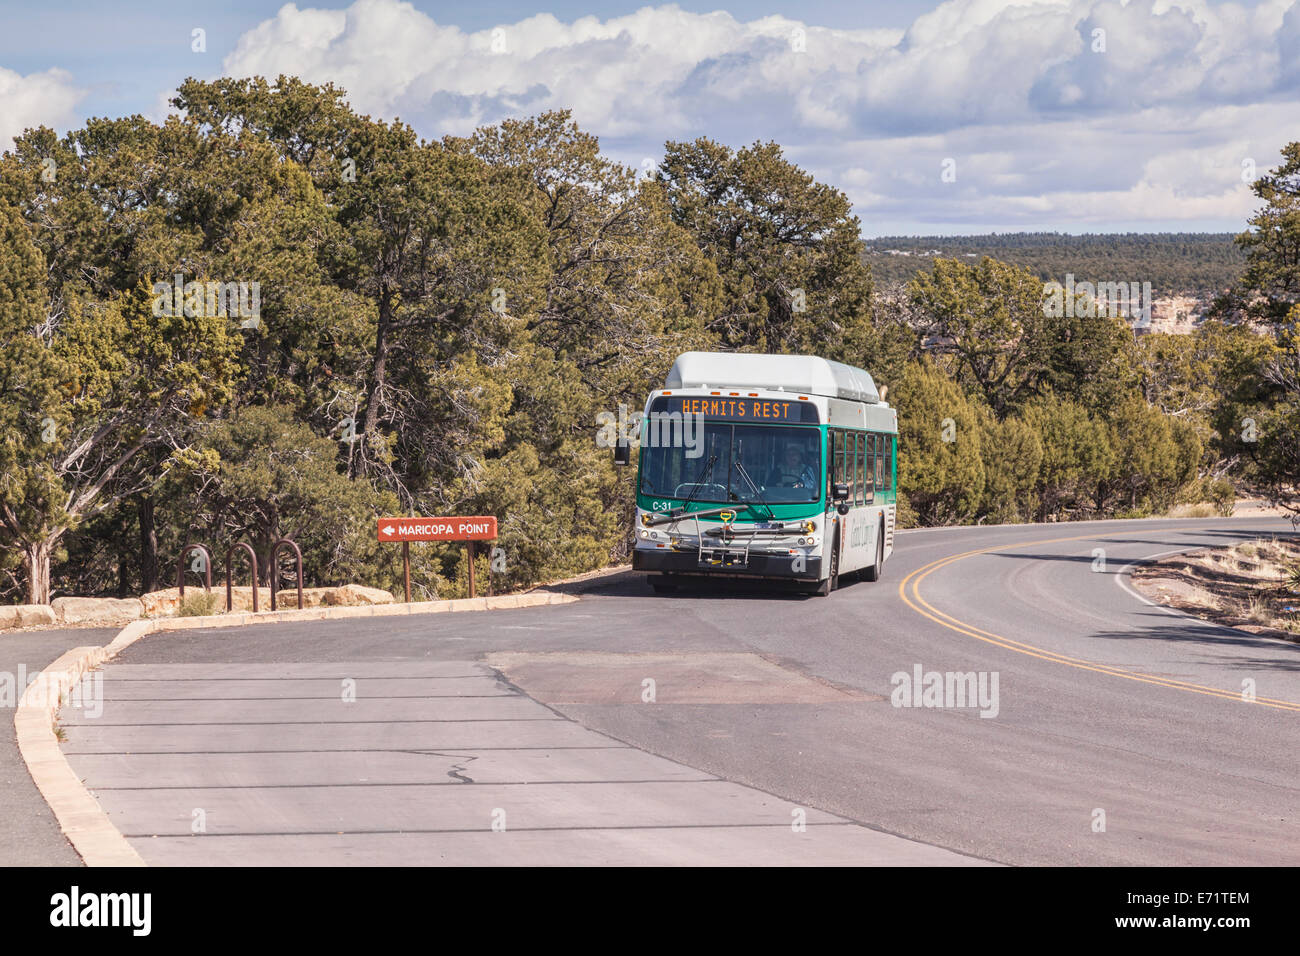 Grand Canyon Shuttle Bus, approaching the stop at Maricopa Point. Powered by natural gas, the shuttles have been - Stock Image